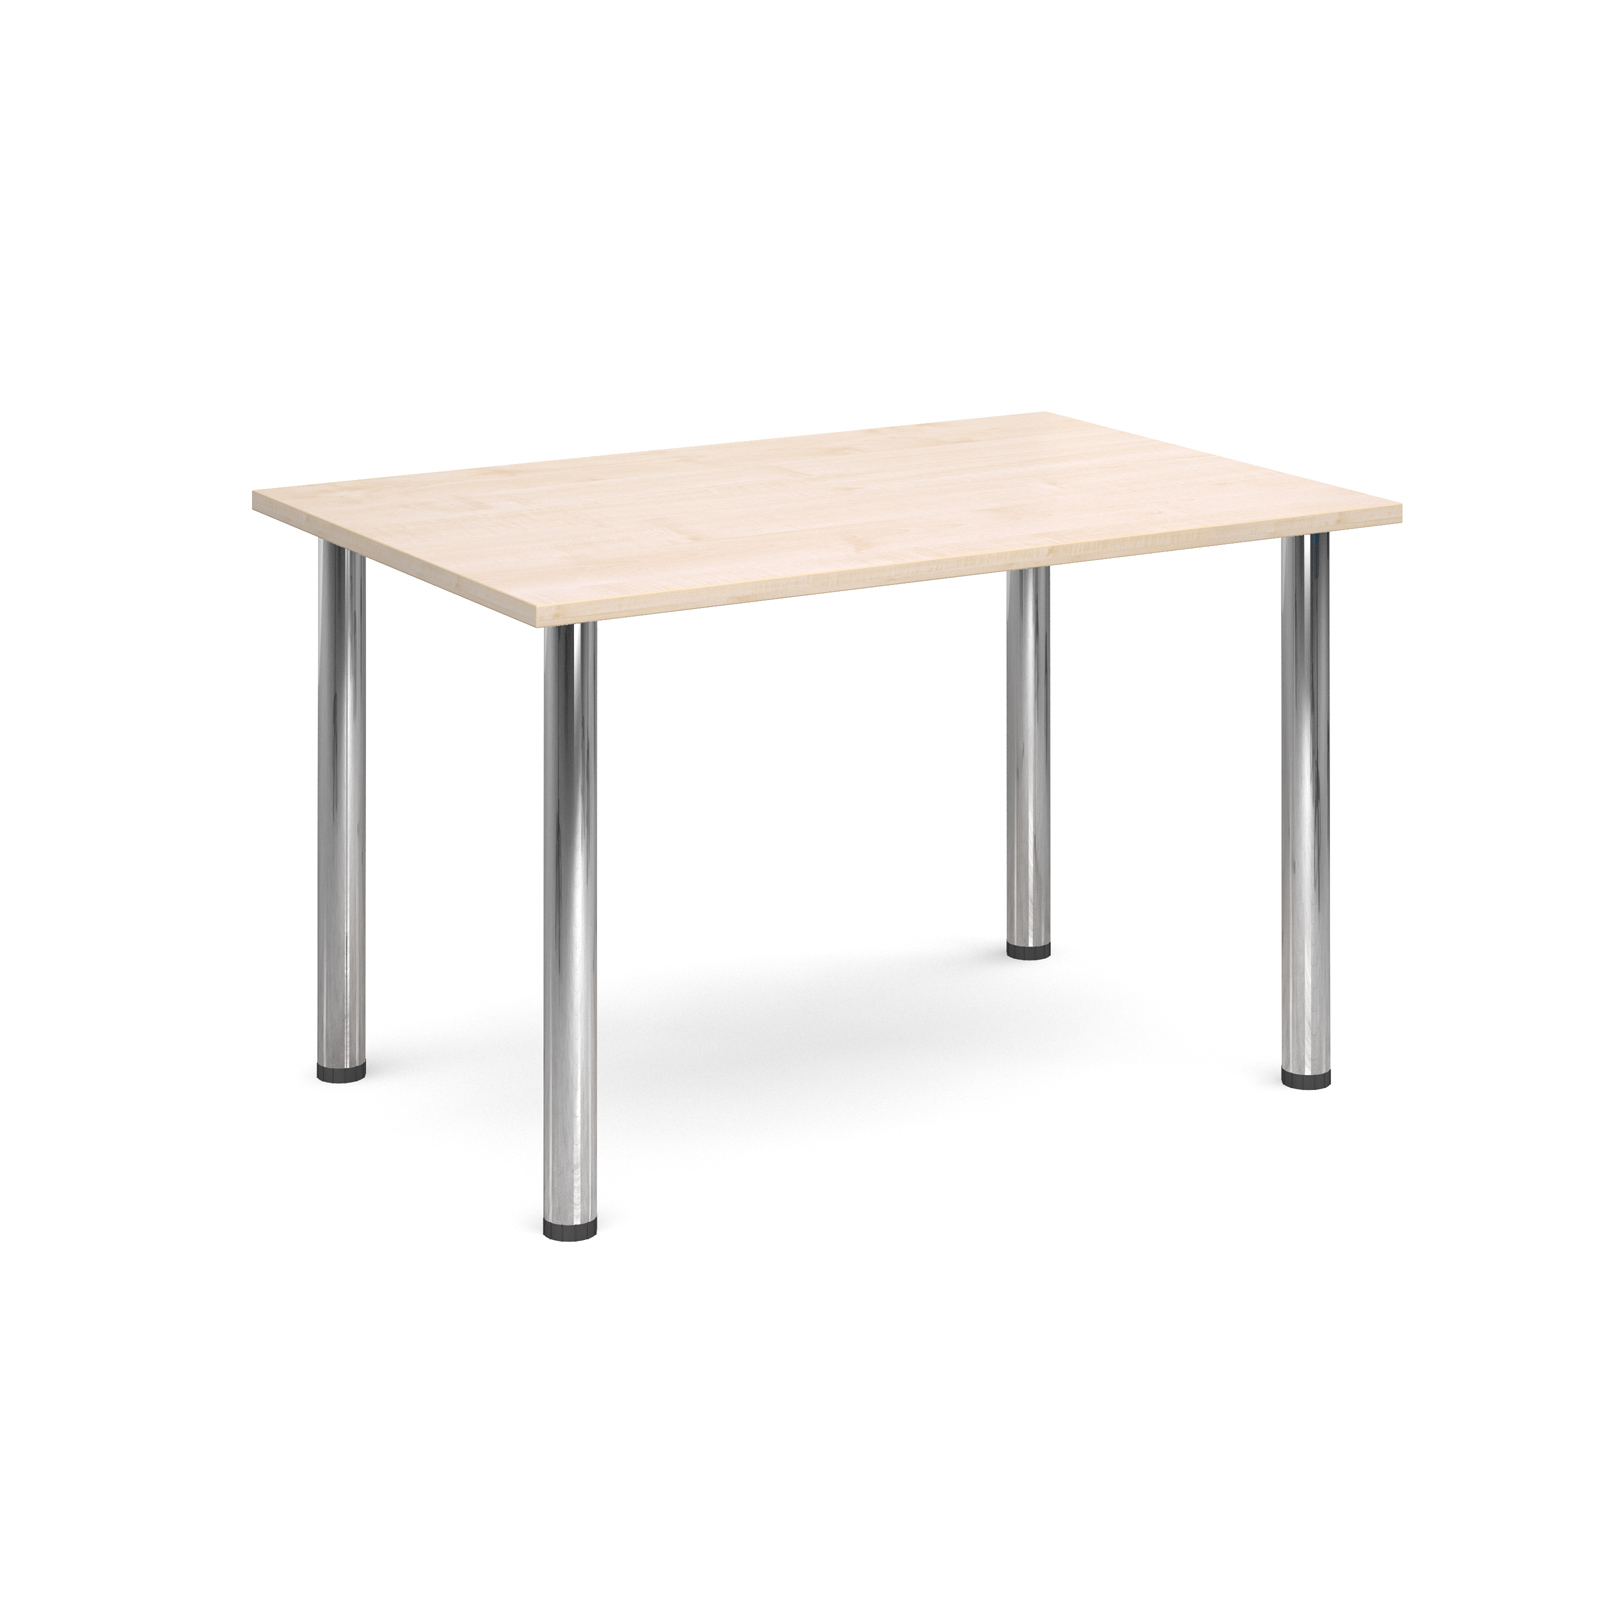 1300 Flexi table Chrome radial Legs-Maple